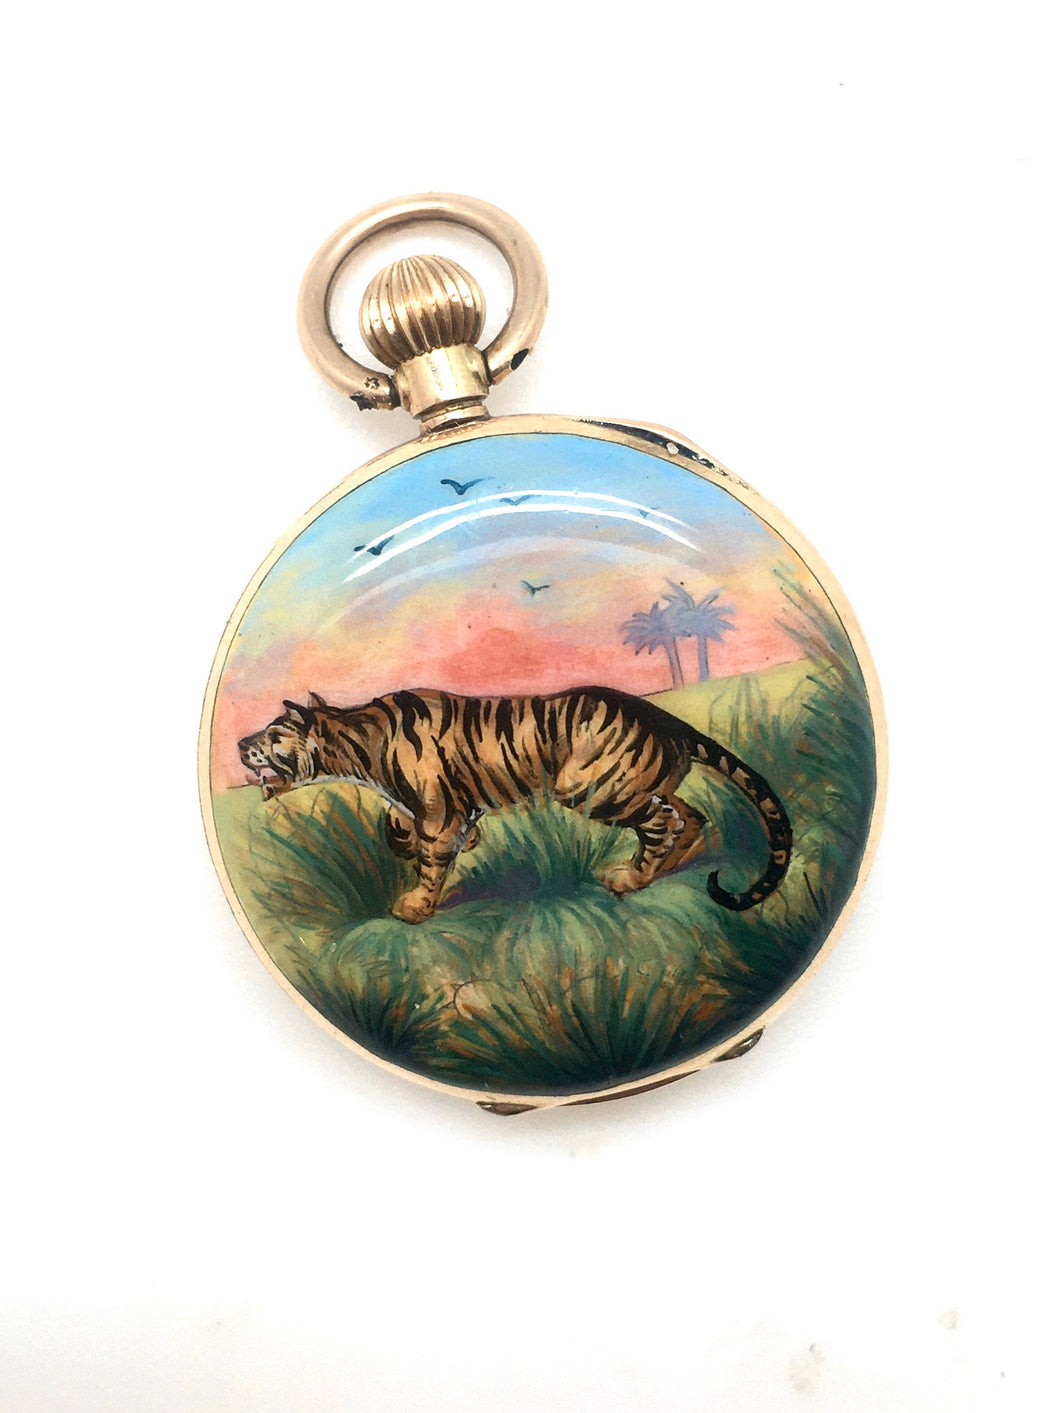 Antique 14k Enameled Tiger Pocket Watch